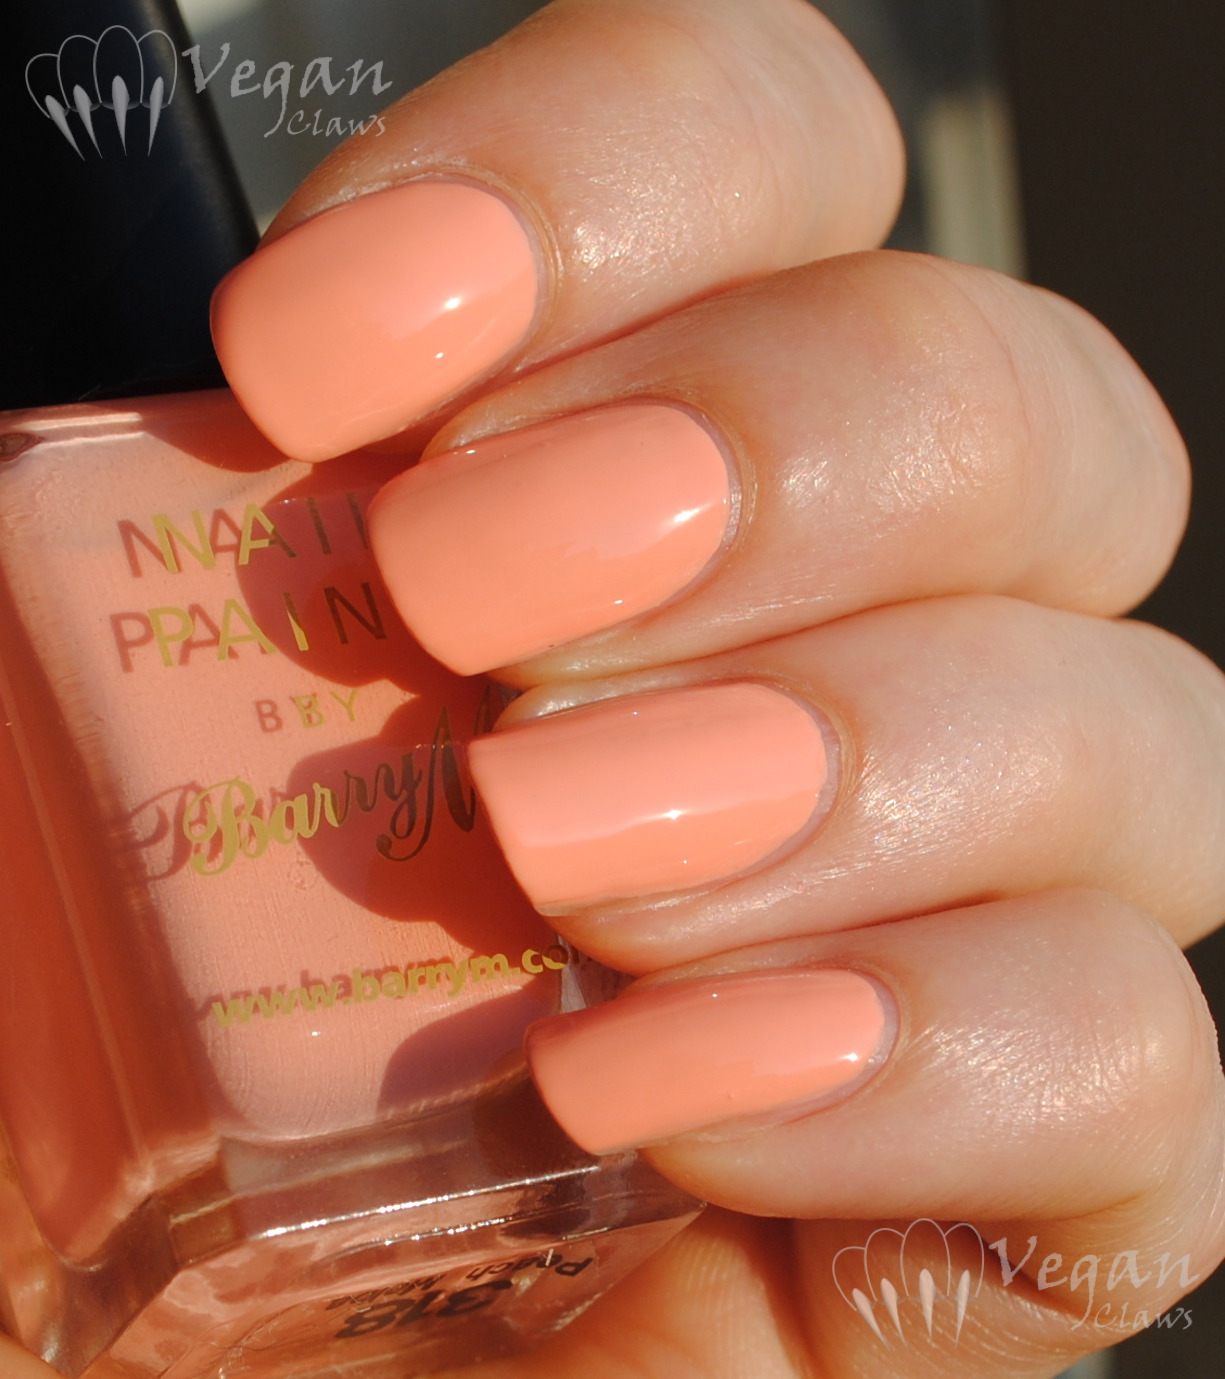 peach | Vegan Claws